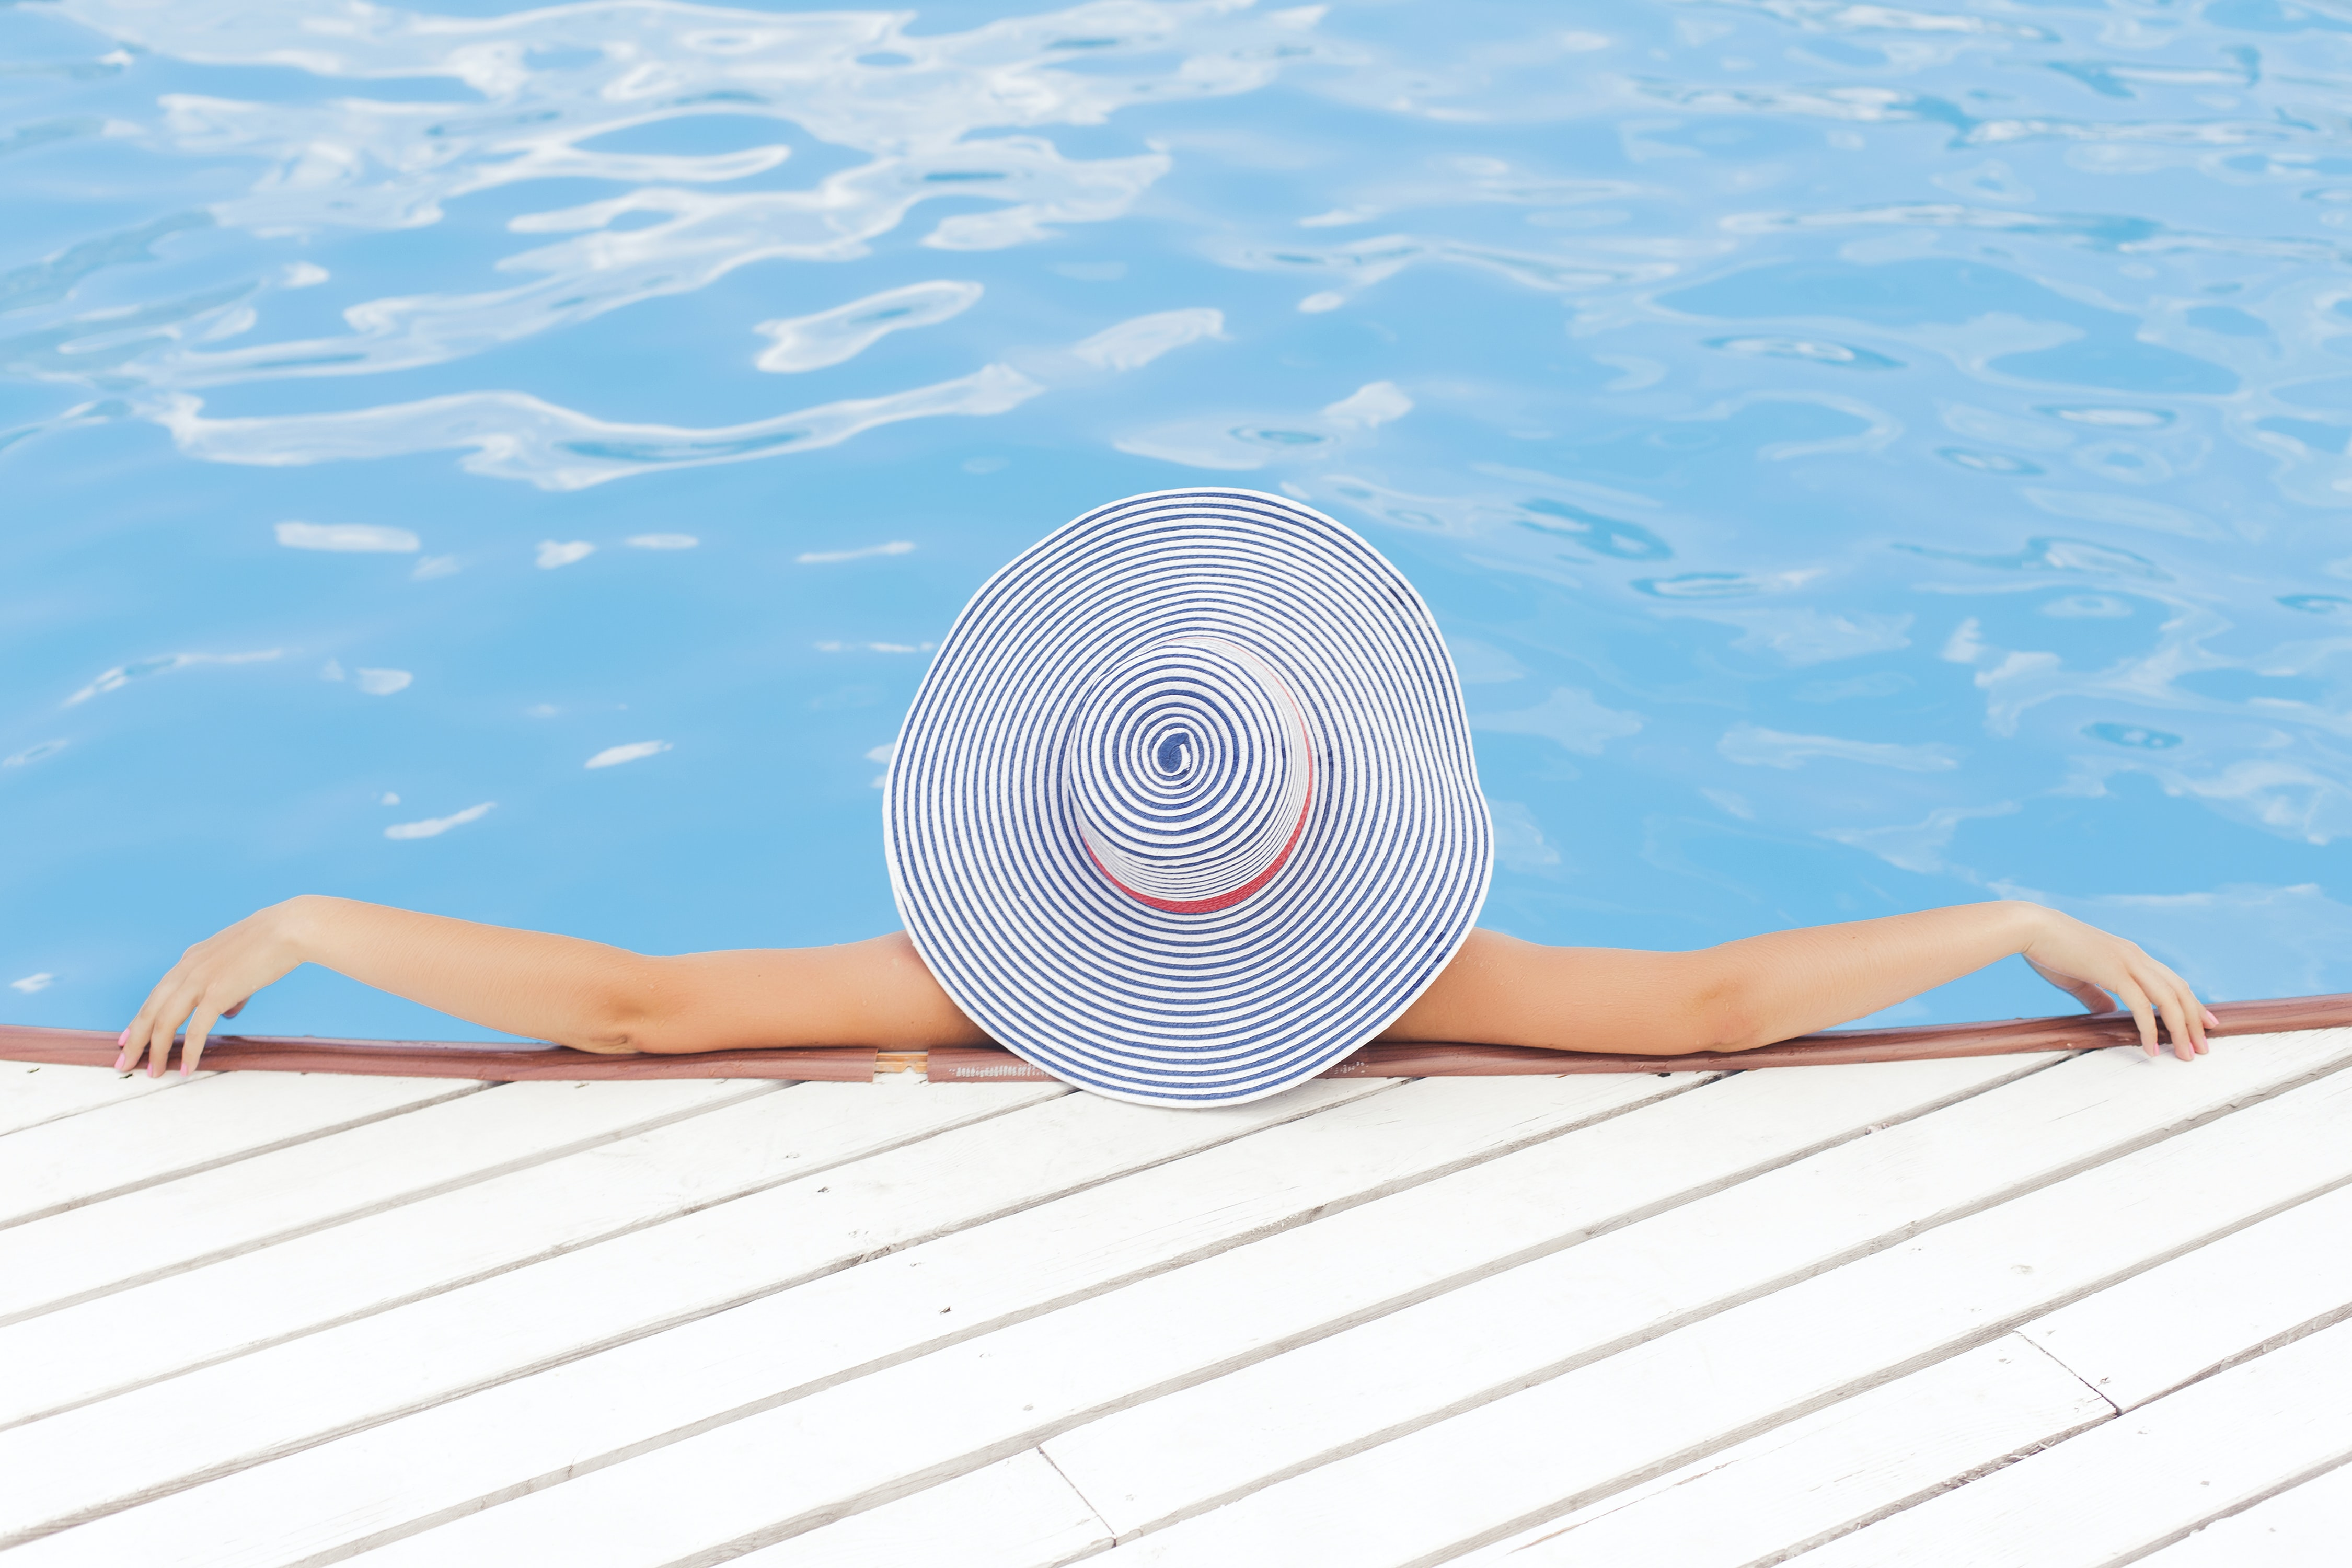 woman leaning on white concrete surface beside swimming pool during daytime